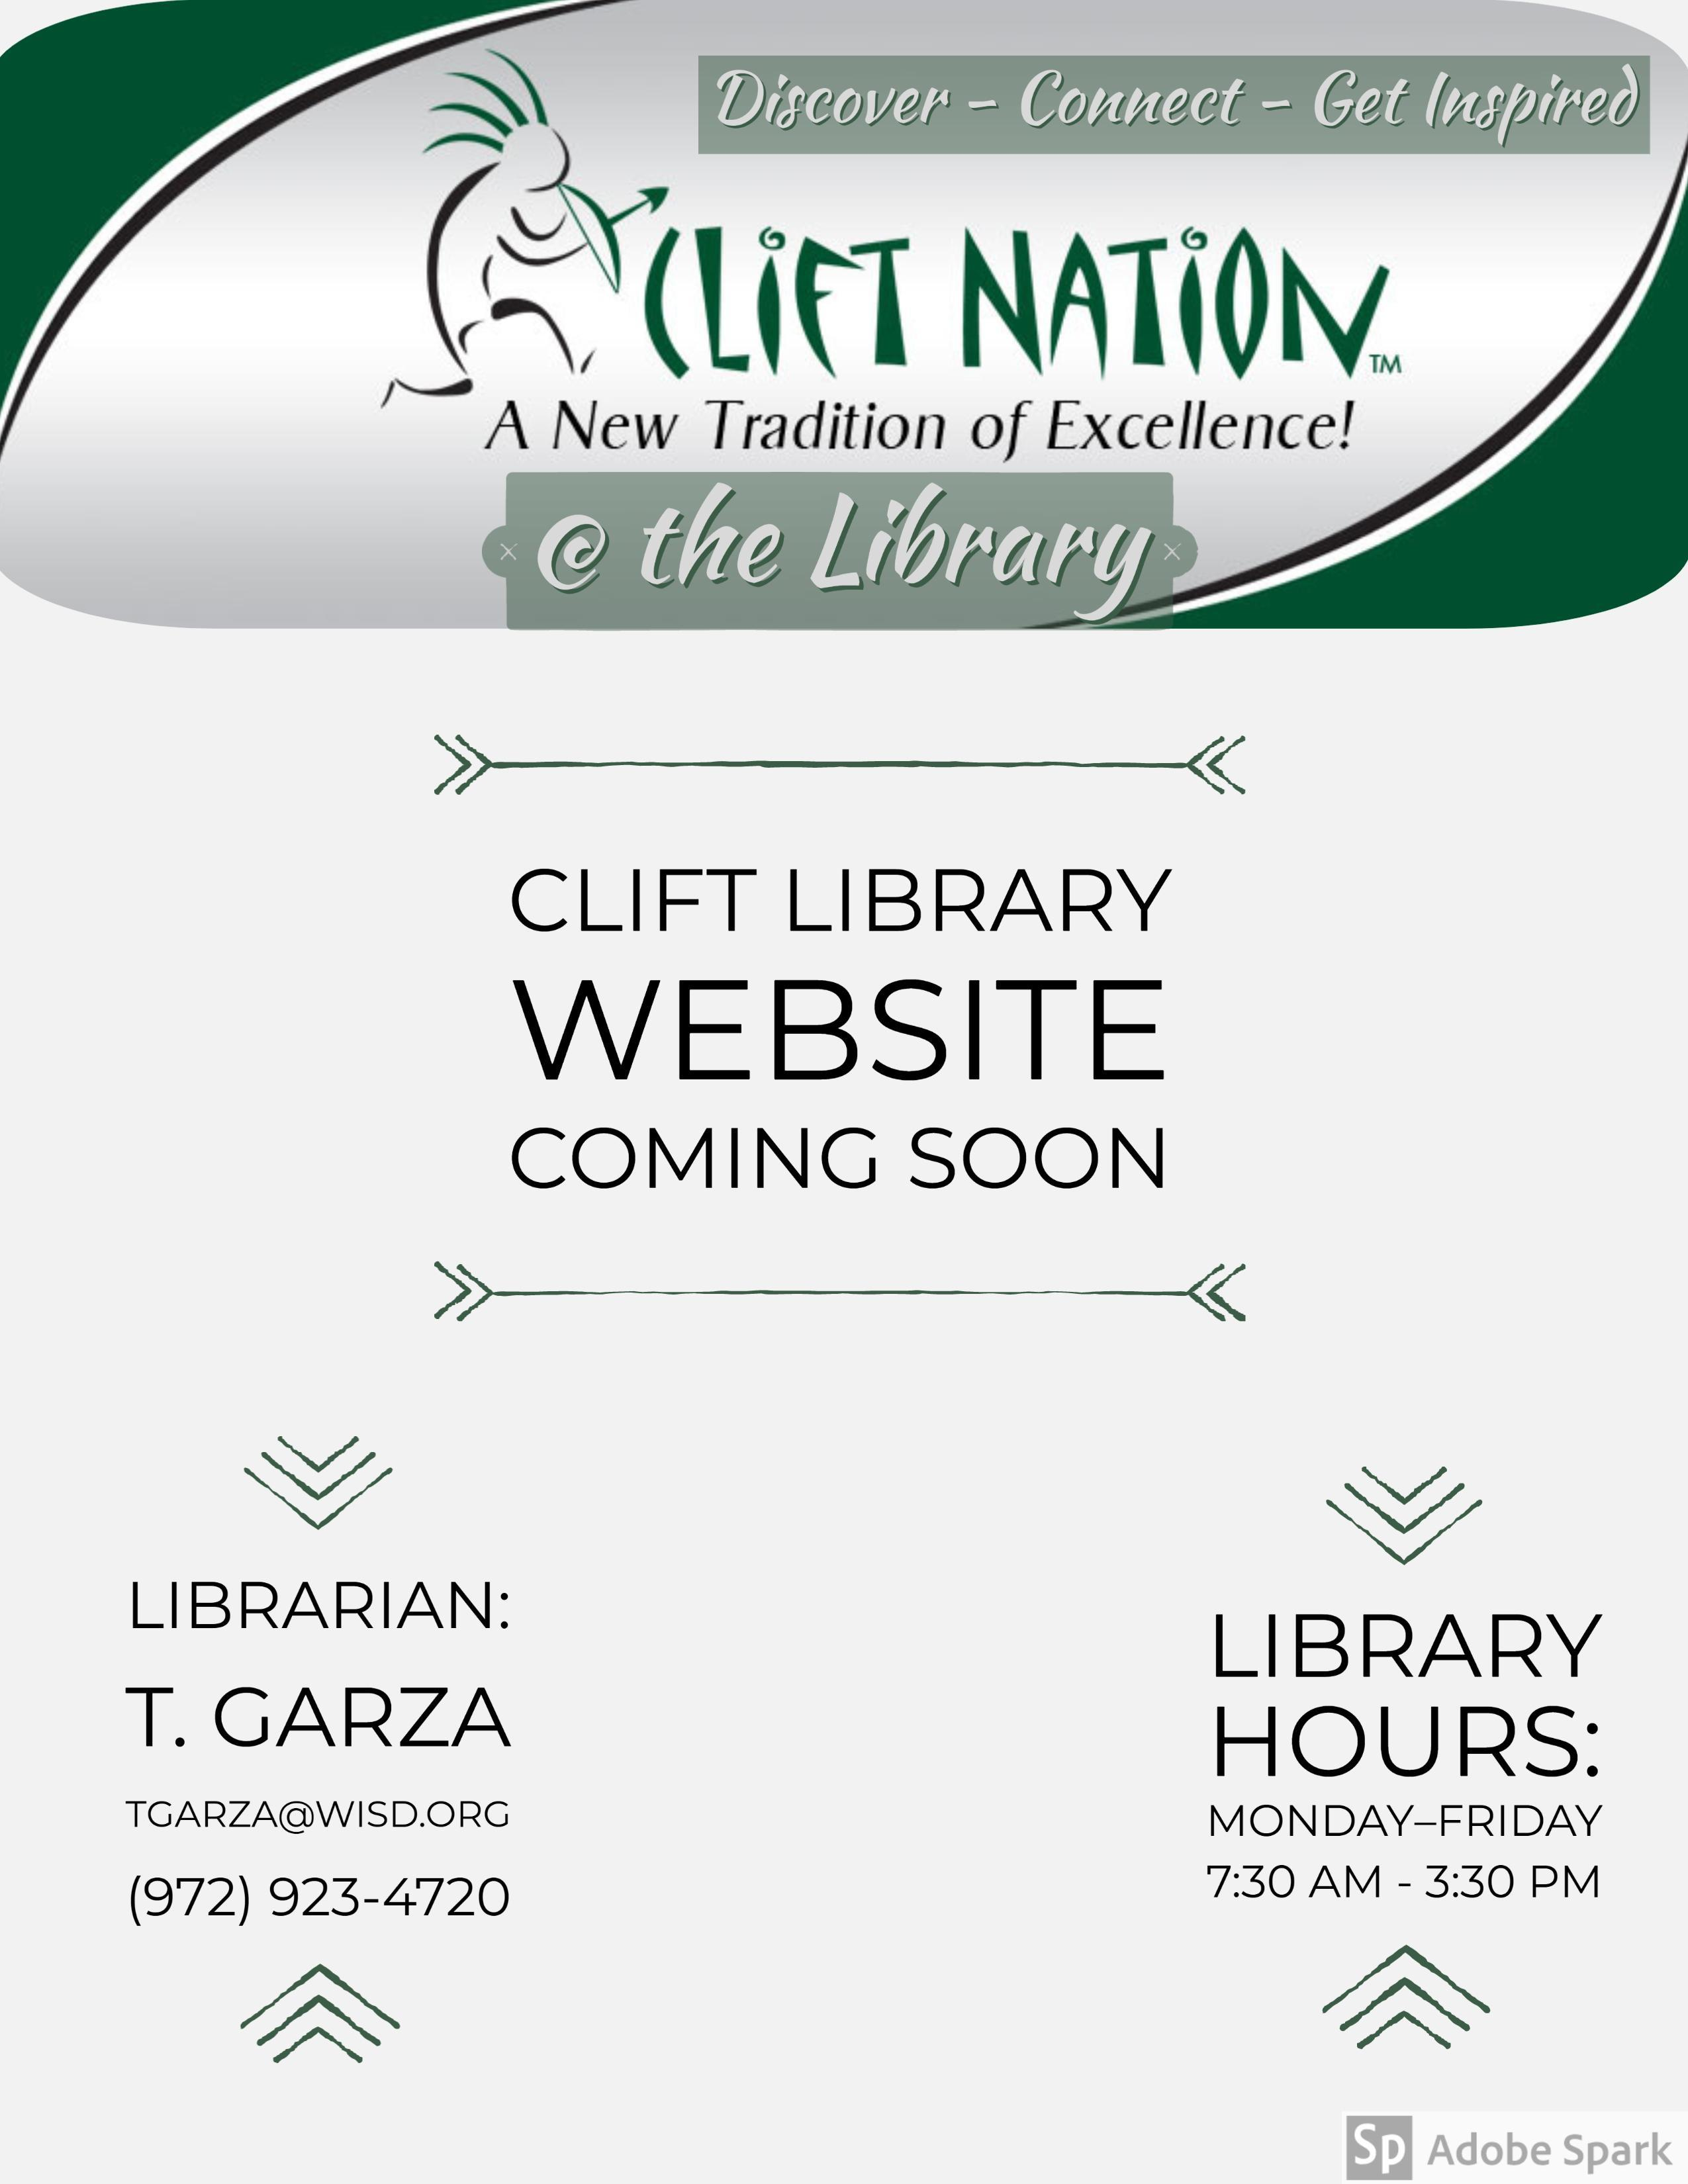 Discover Connect Get Inspired.  Clift Nation.  A New Tradition of Excellence.  At the library.  Clift Library Website Coming Soon.  Librarian T. Garza tgarza@wisd.org 972-923-4720.  Hours Monday-Friday 7:30AM-3:30PM.